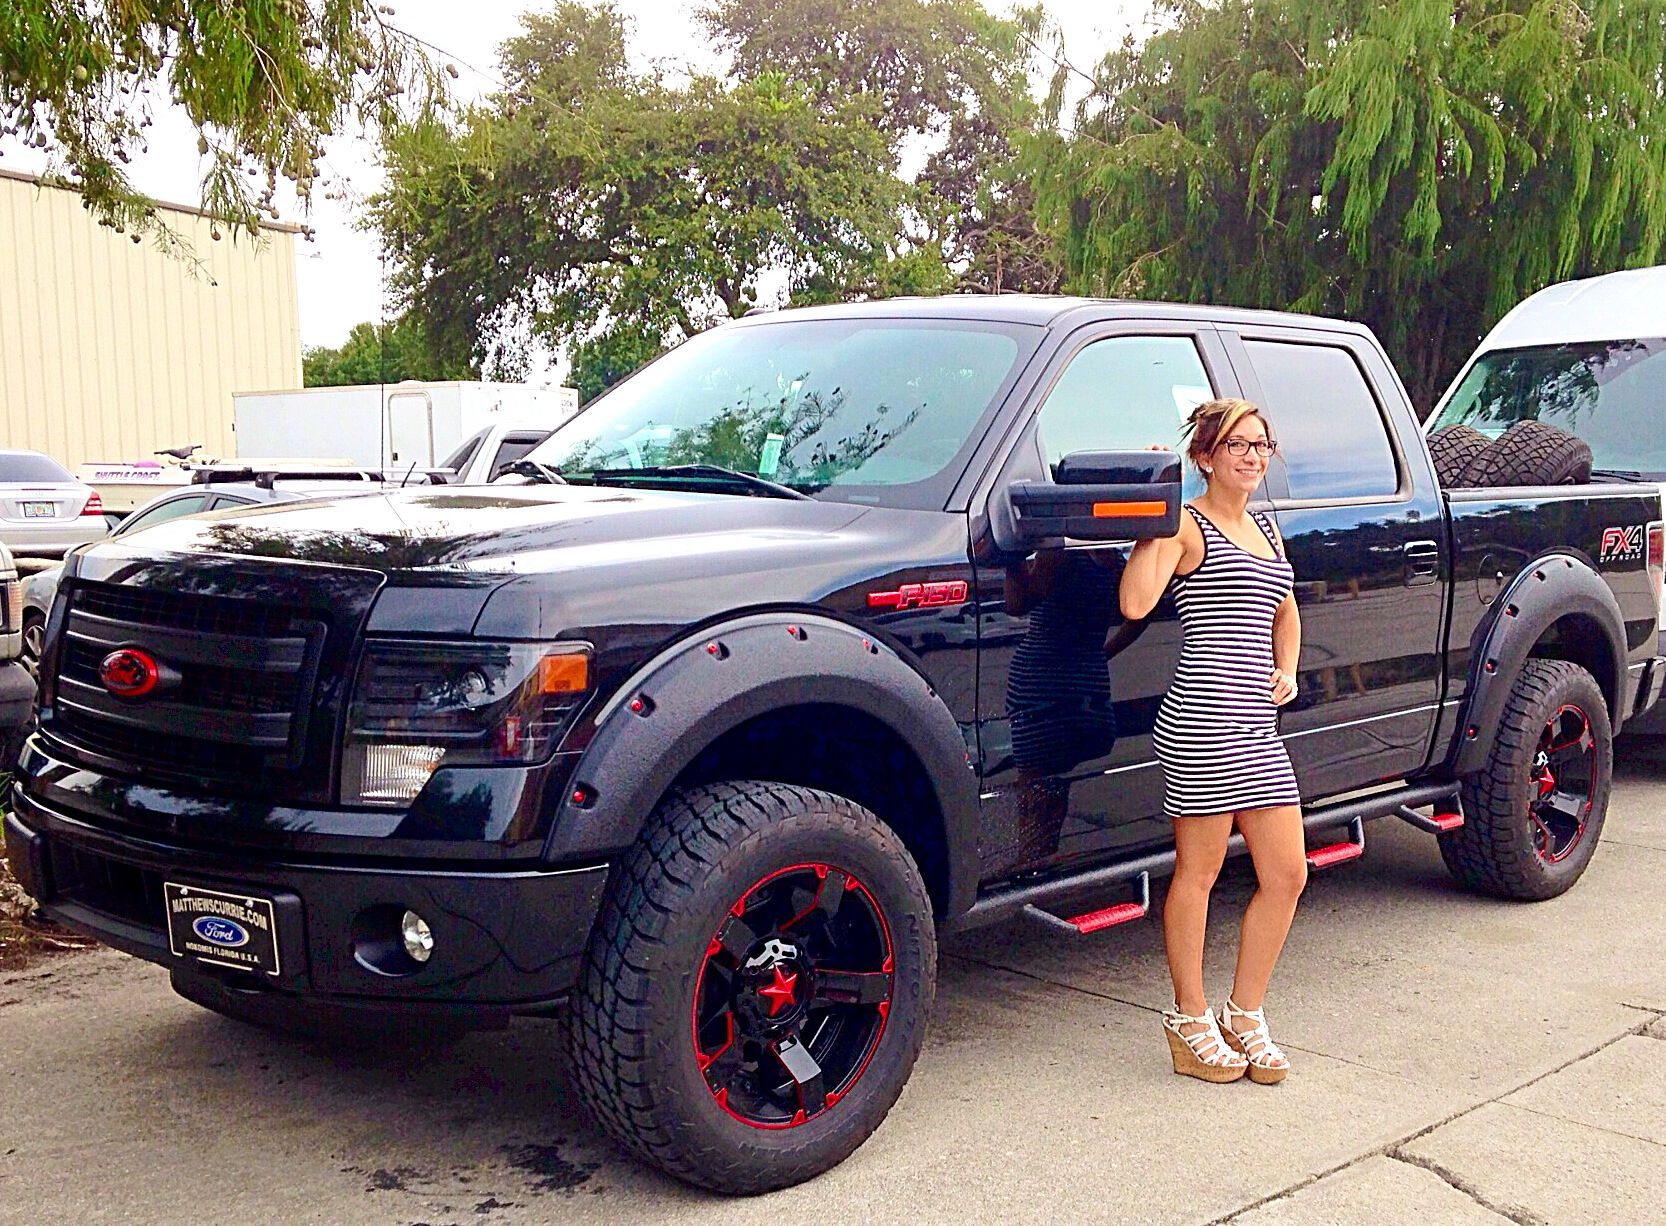 Used Ford F150 Rims For Sale >> Ford F150 custom painted Rockstar2 wheels and emblems. # ...